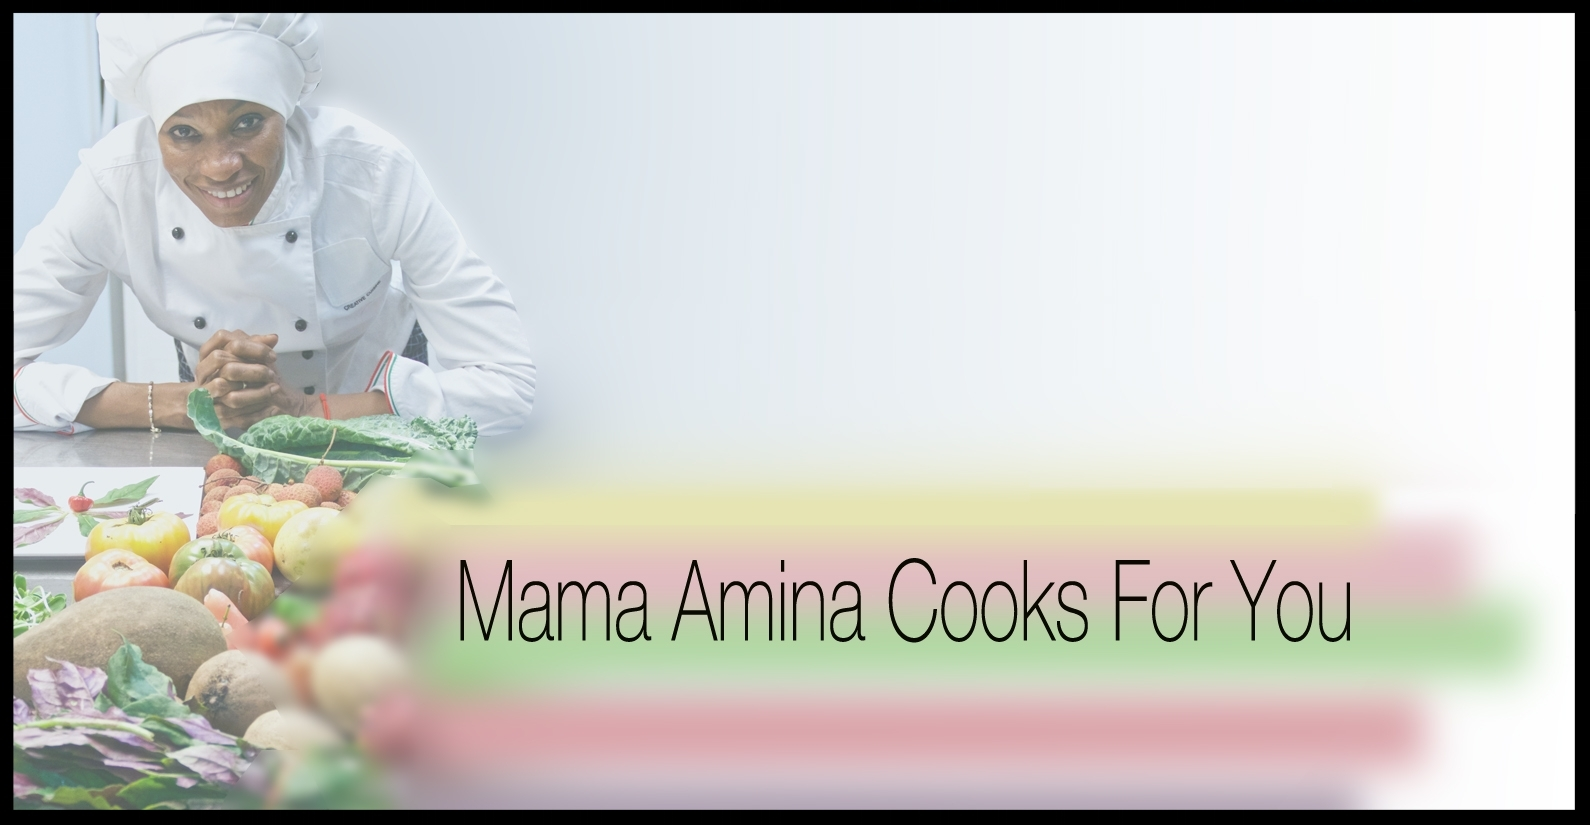 Mama Amina Cooks - Header - website.jpg